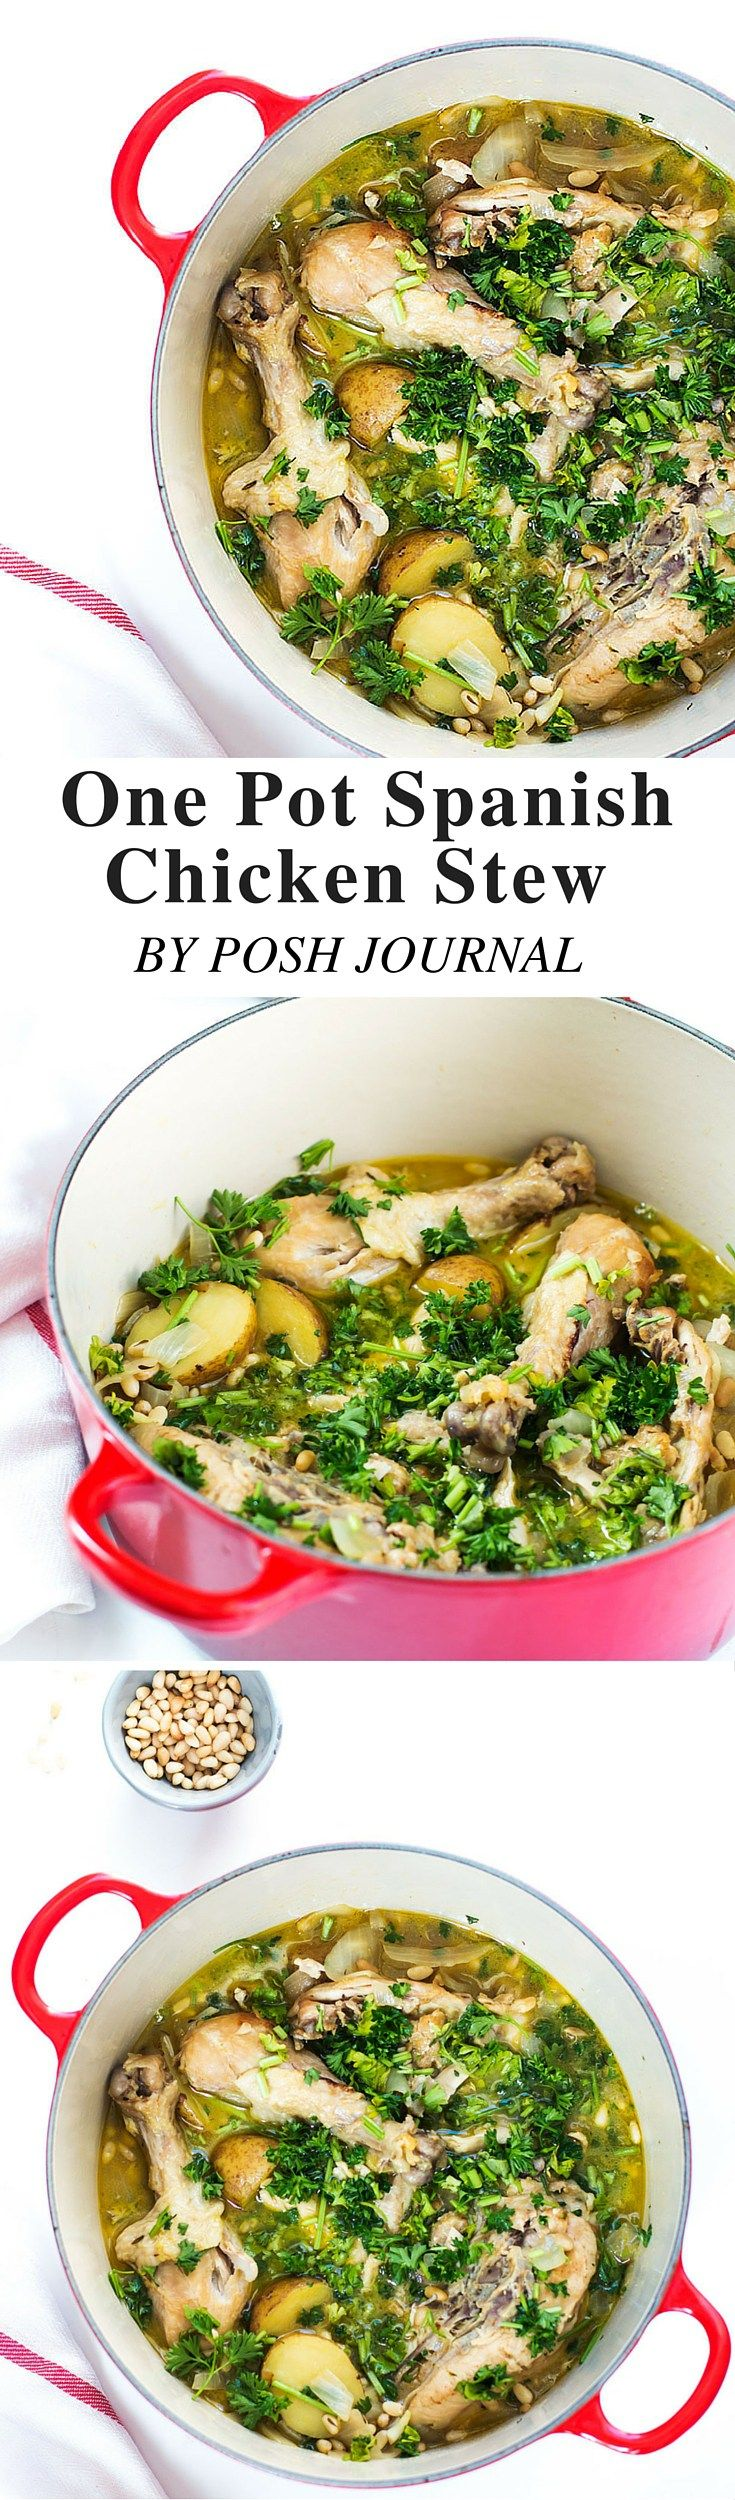 One Pot Spanish Chicken Stew Recipe - Posh Journal . Hearty and delicious! Try this easy-to-follow One Pot Spanish Chicken Stew Recipe, perfect for warming a winter night.